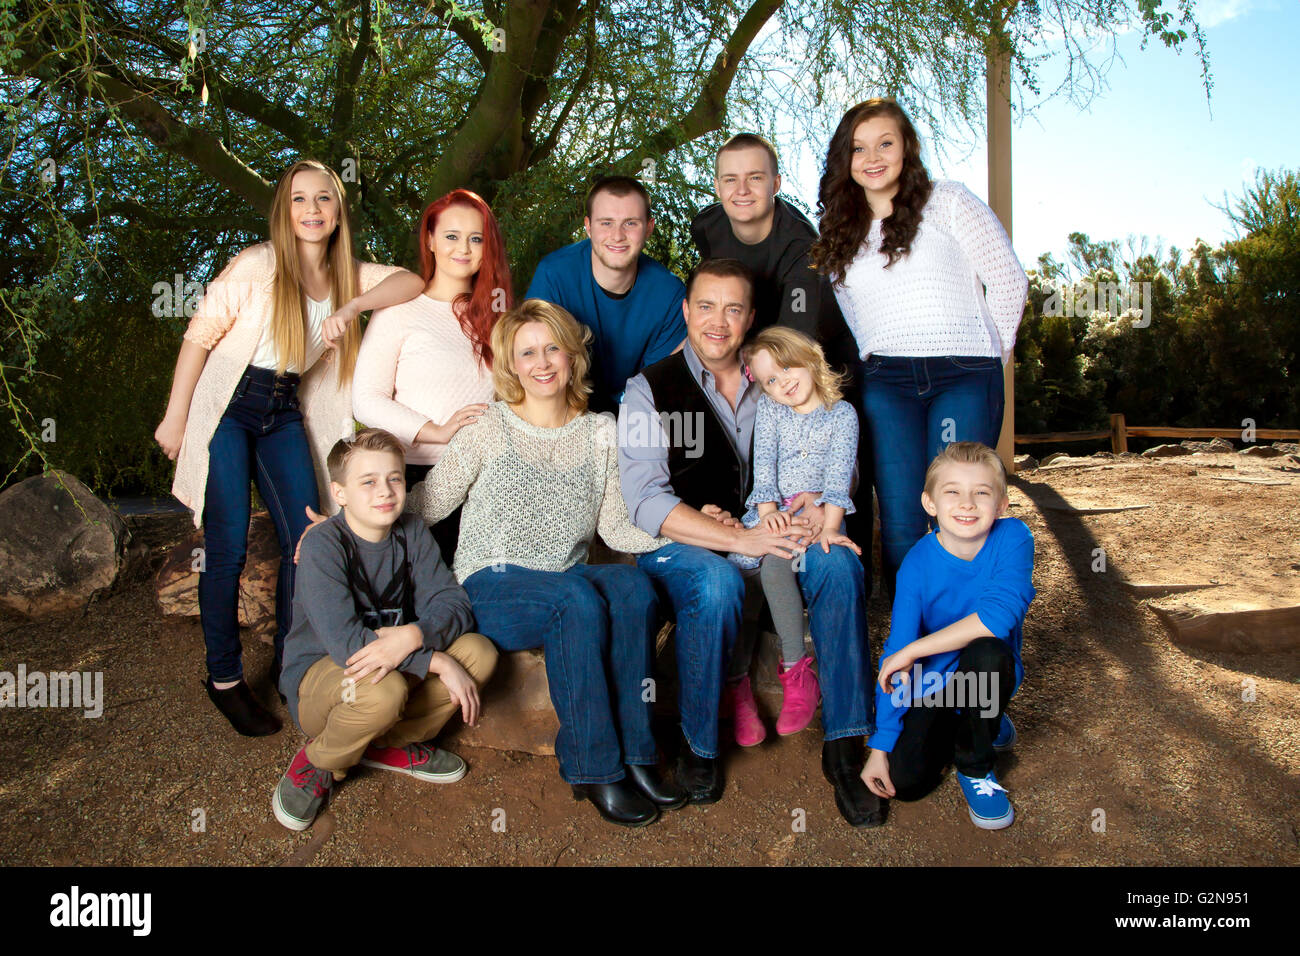 Portrait of a large family under a mesquite tree.  They are close and connected. - Stock Image